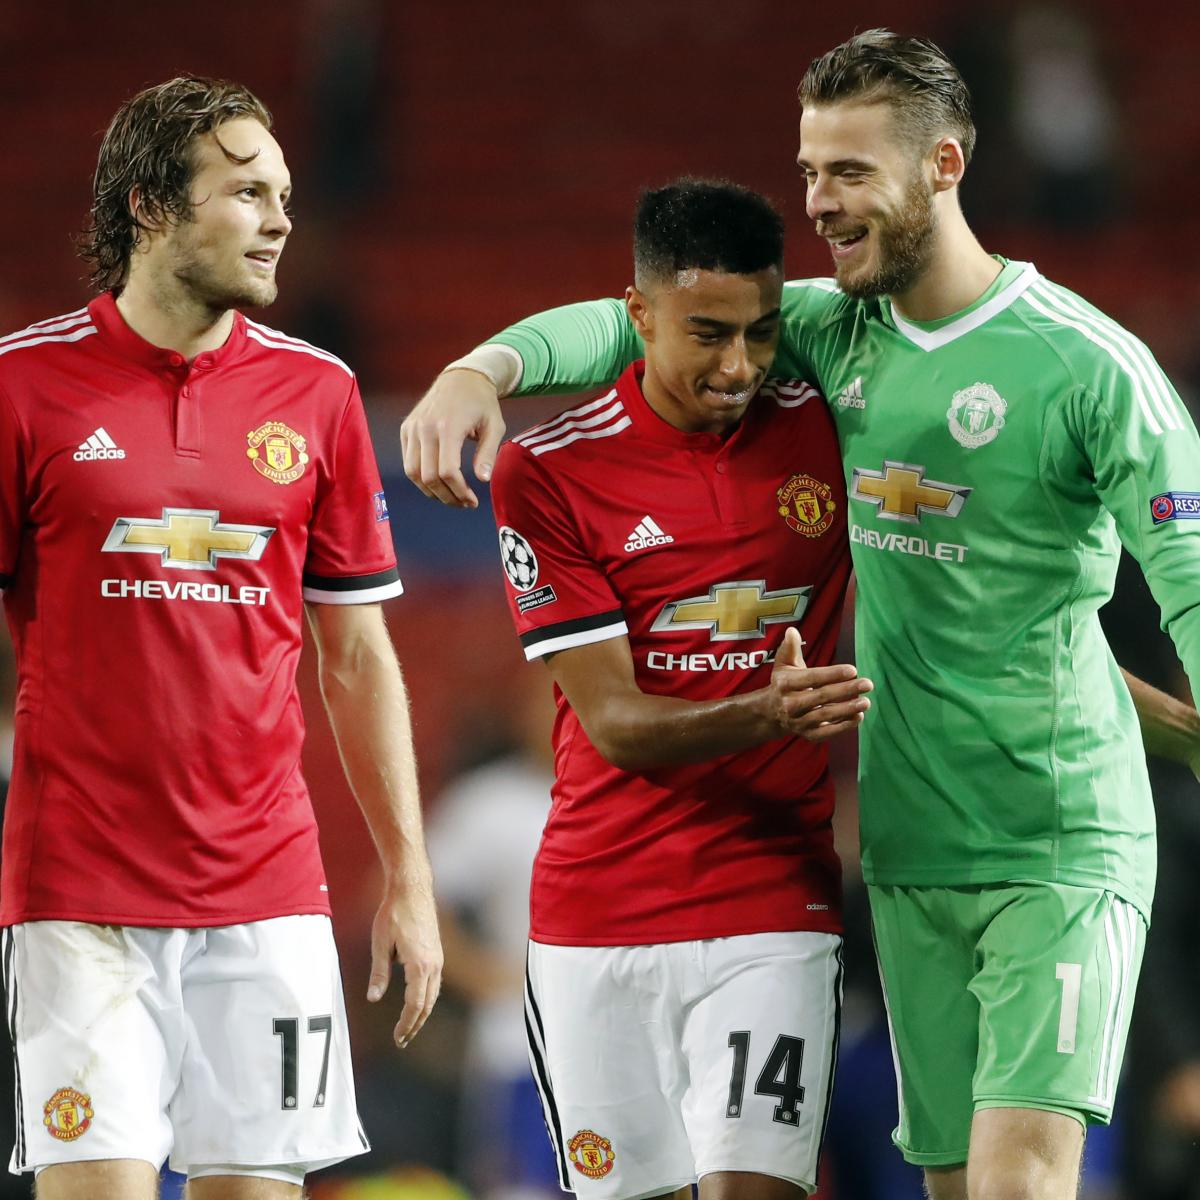 Live Streaming Soccer News Liverpool Vs Benfica Live: Benfica Vs. Manchester United: Team News, Preview, Live